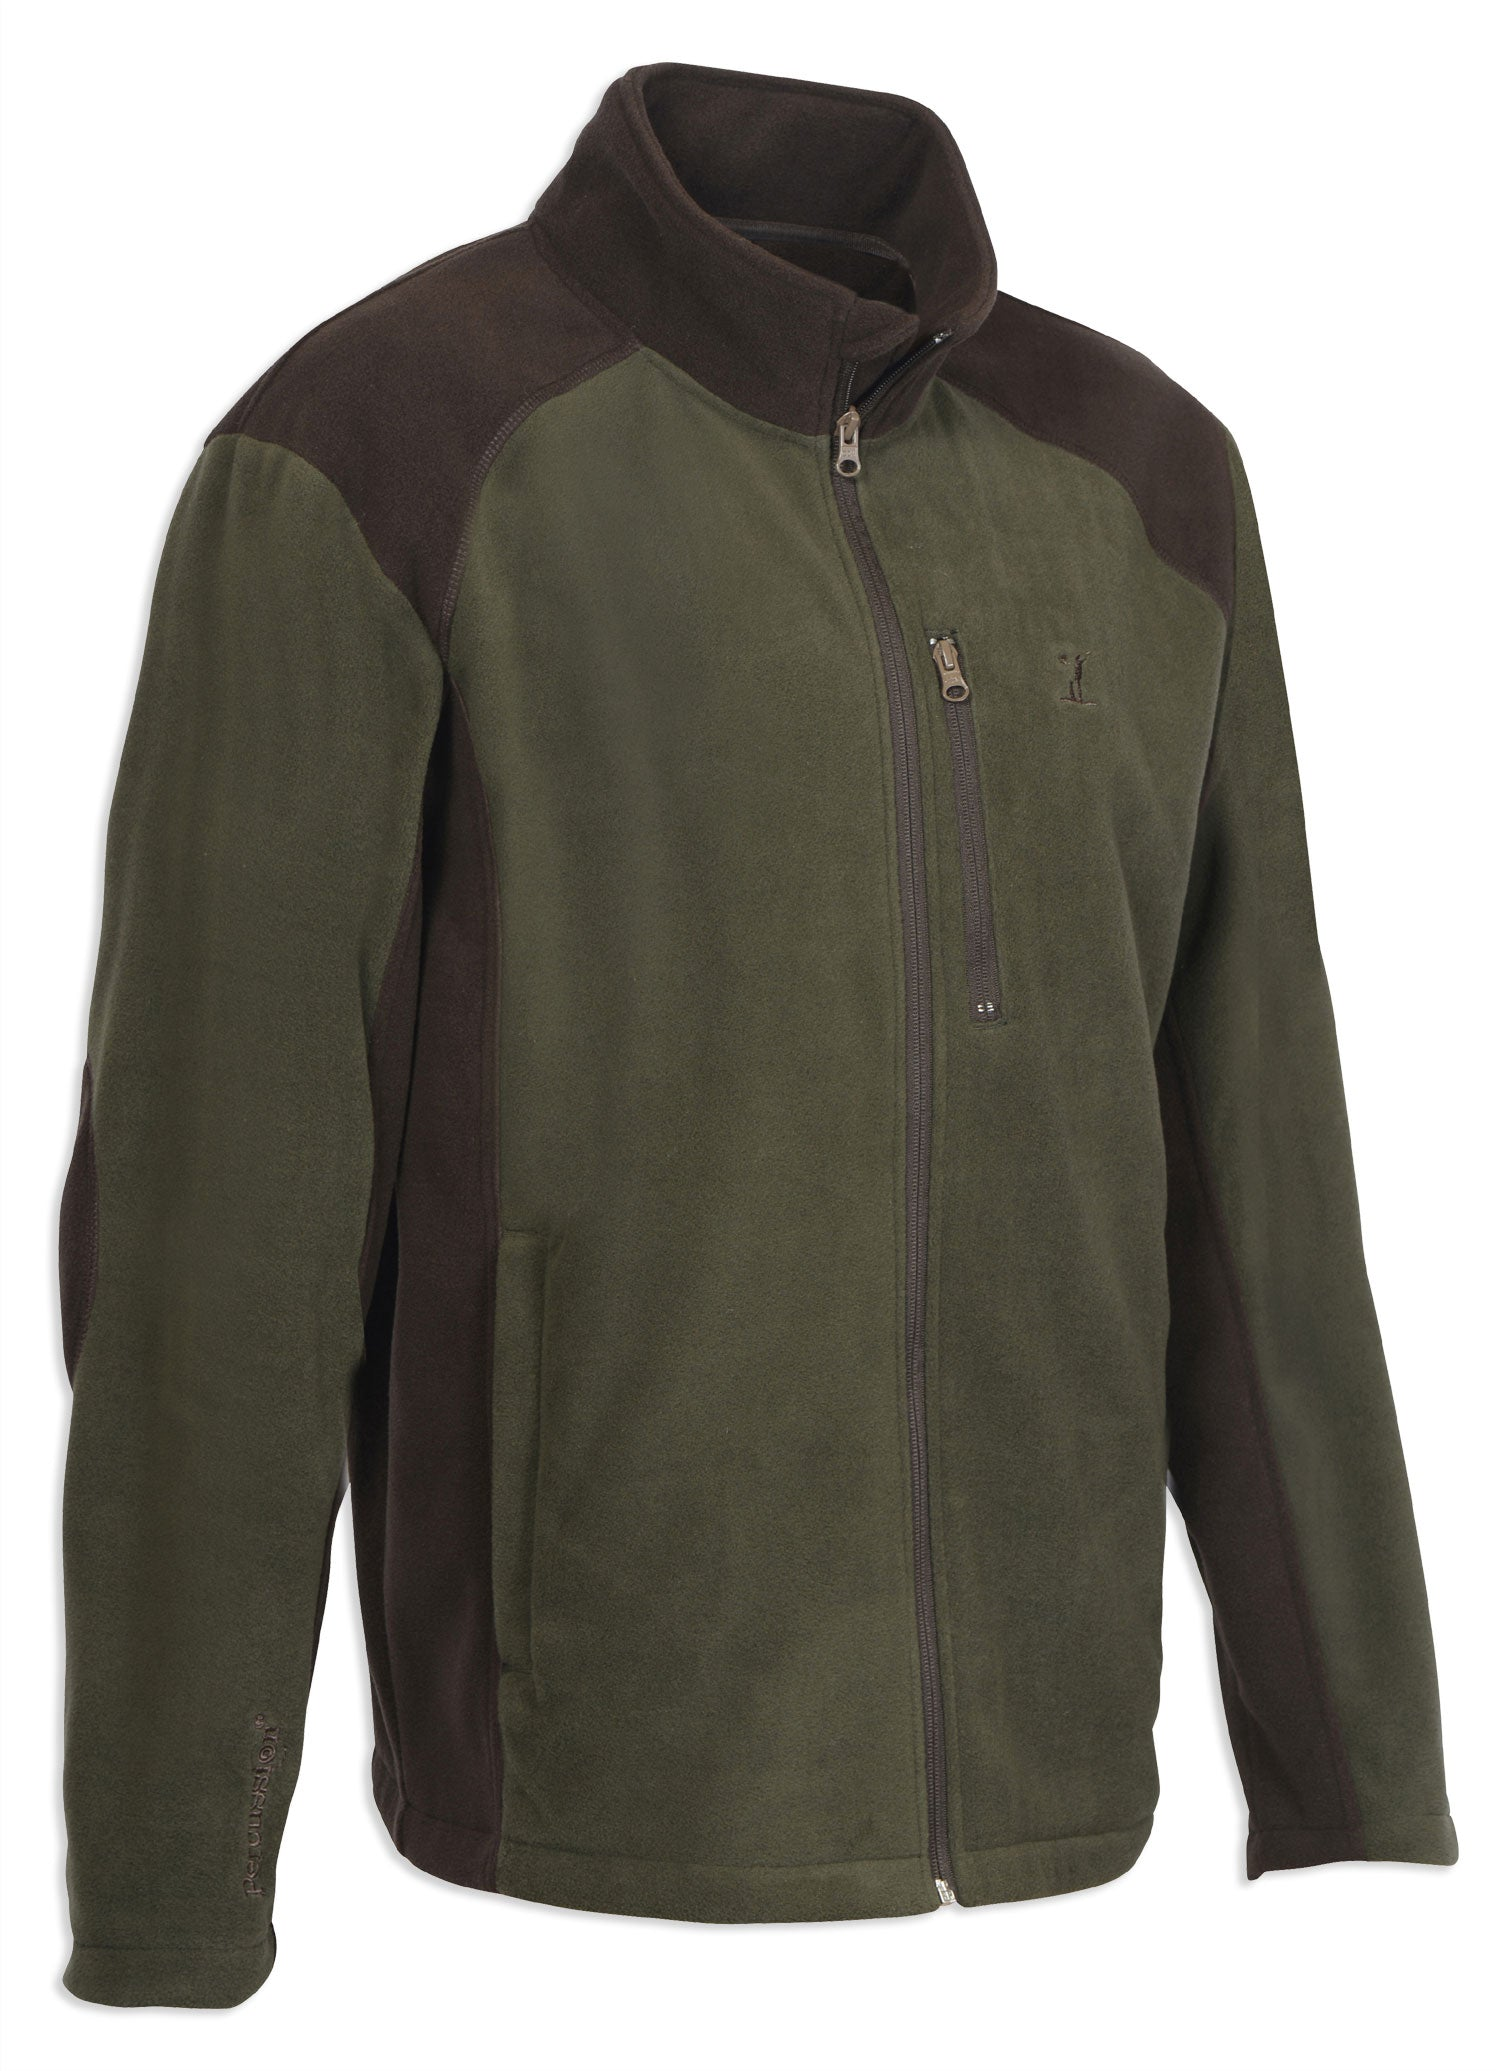 Percussion Cor Polartane Fleece Jacket